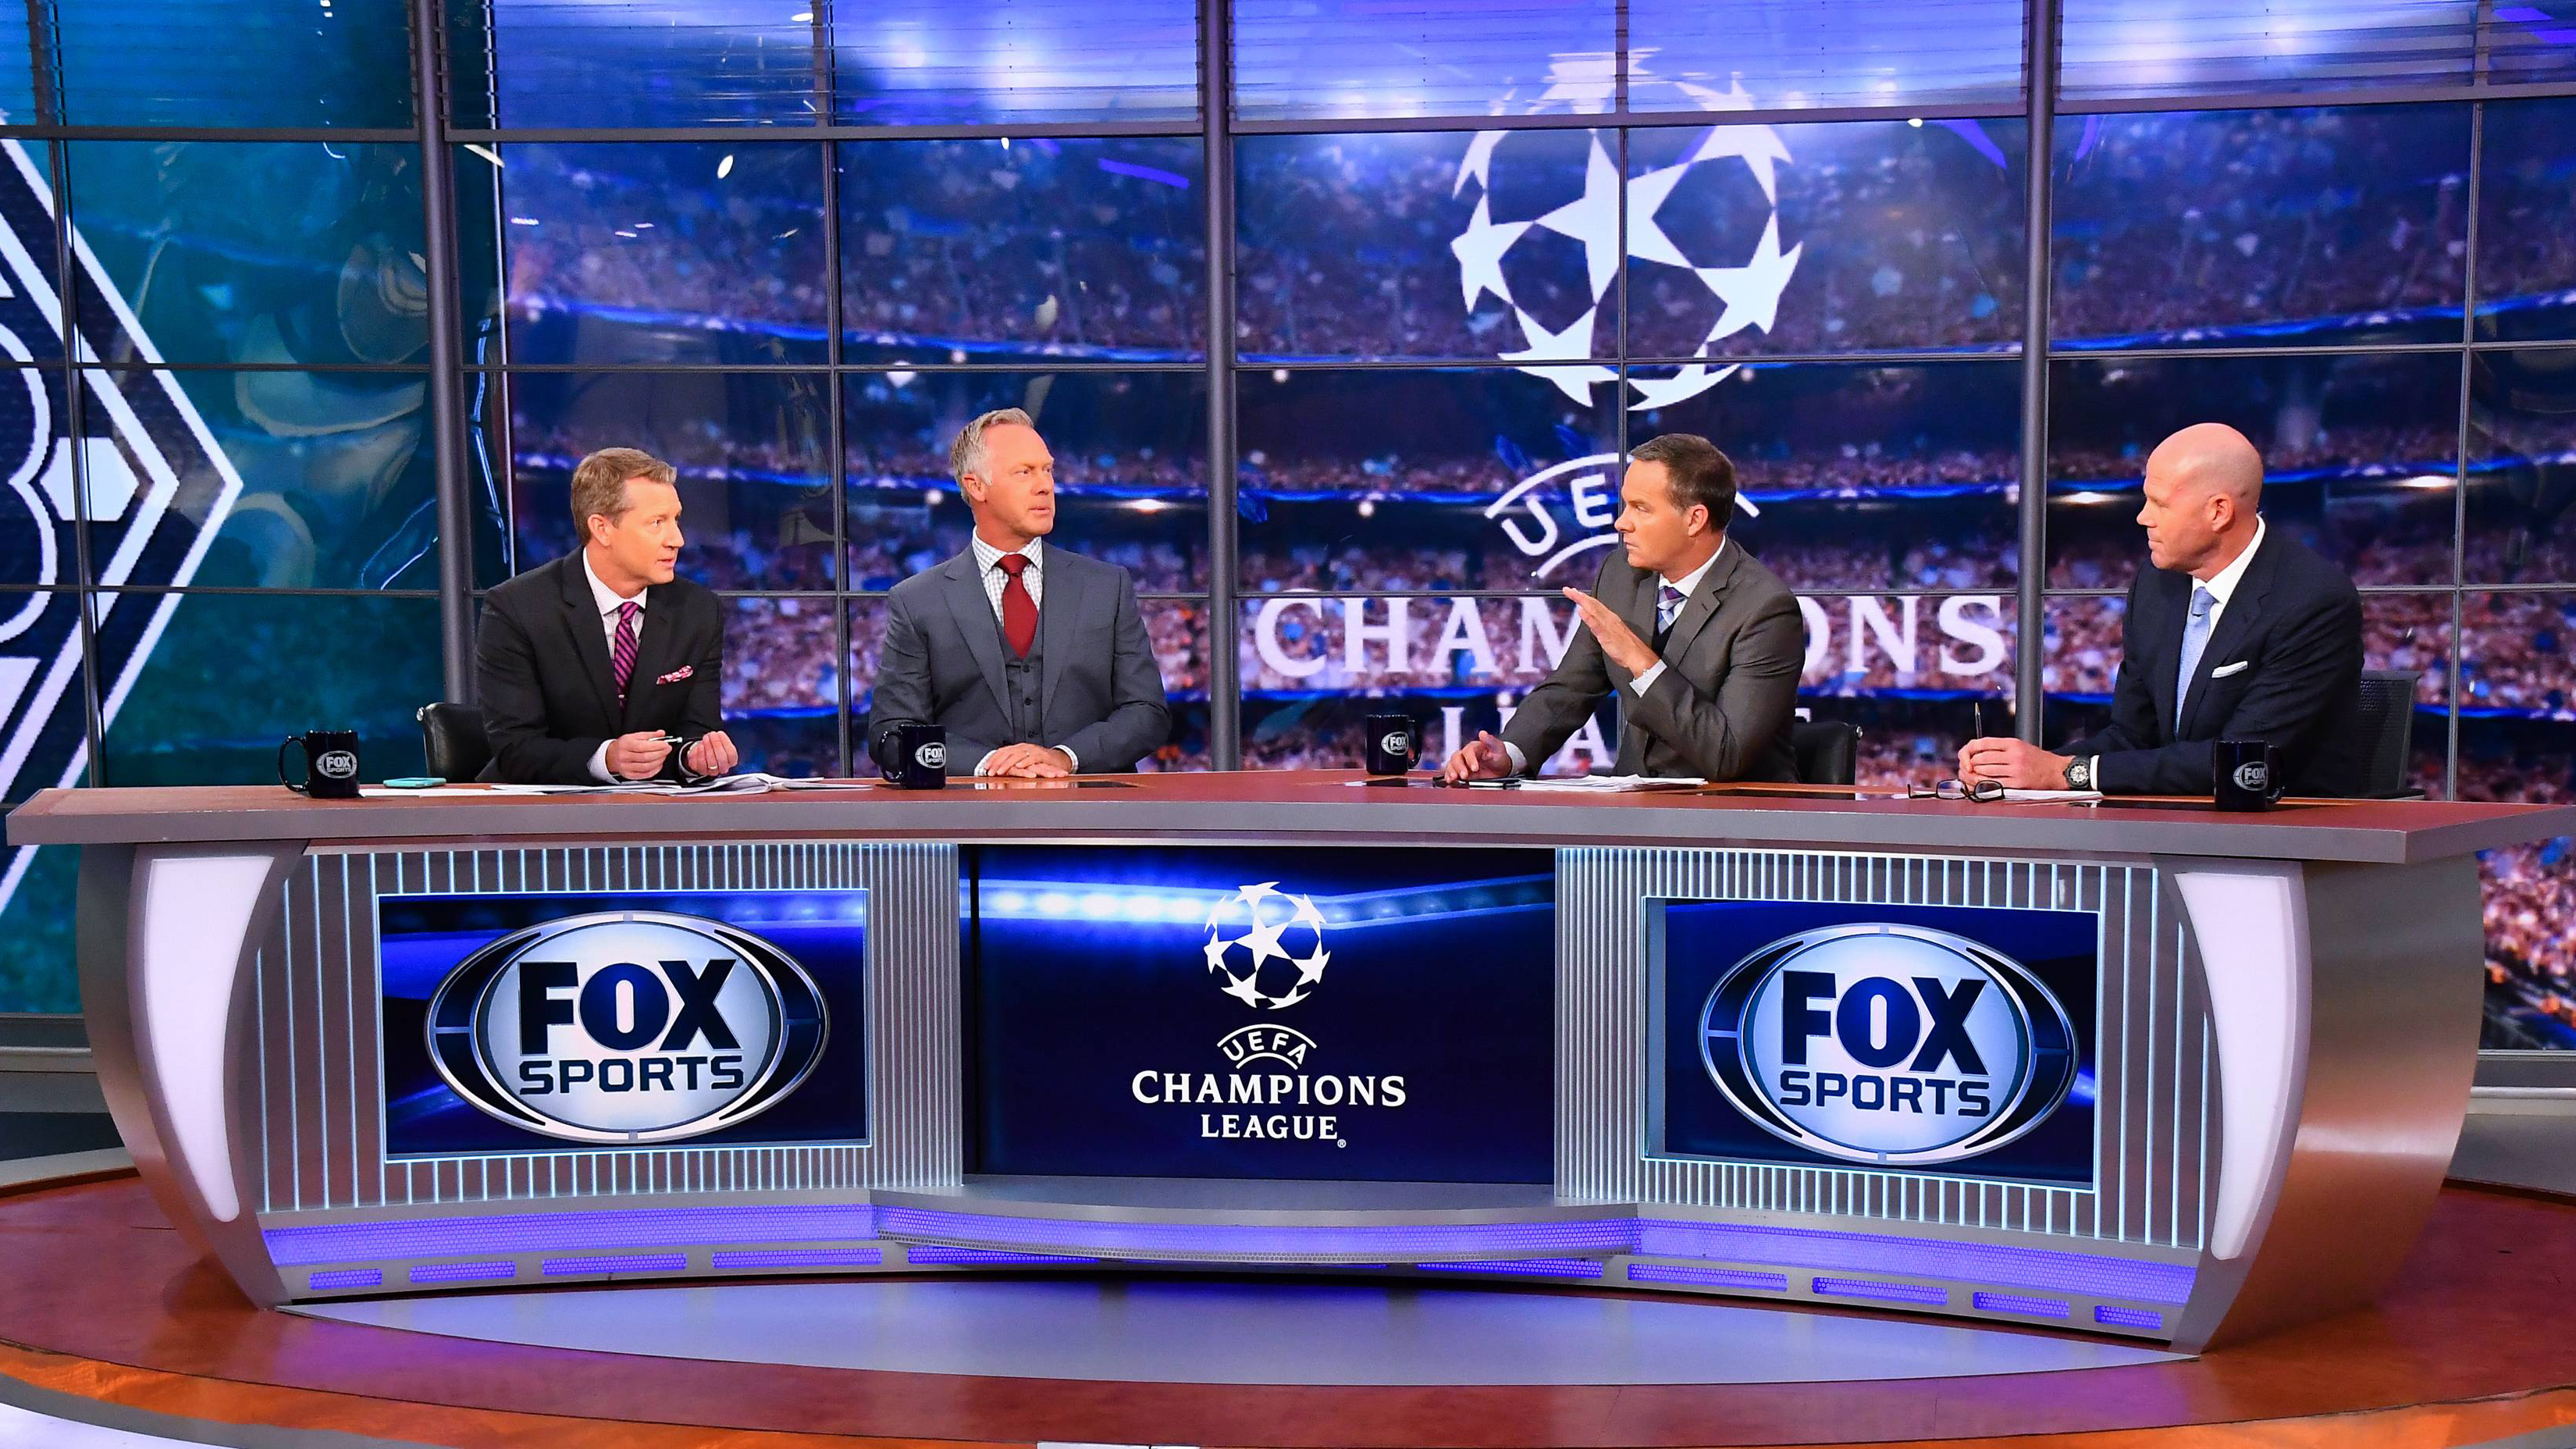 fox sports uefa league champions desk stream foxsports teams matches latest